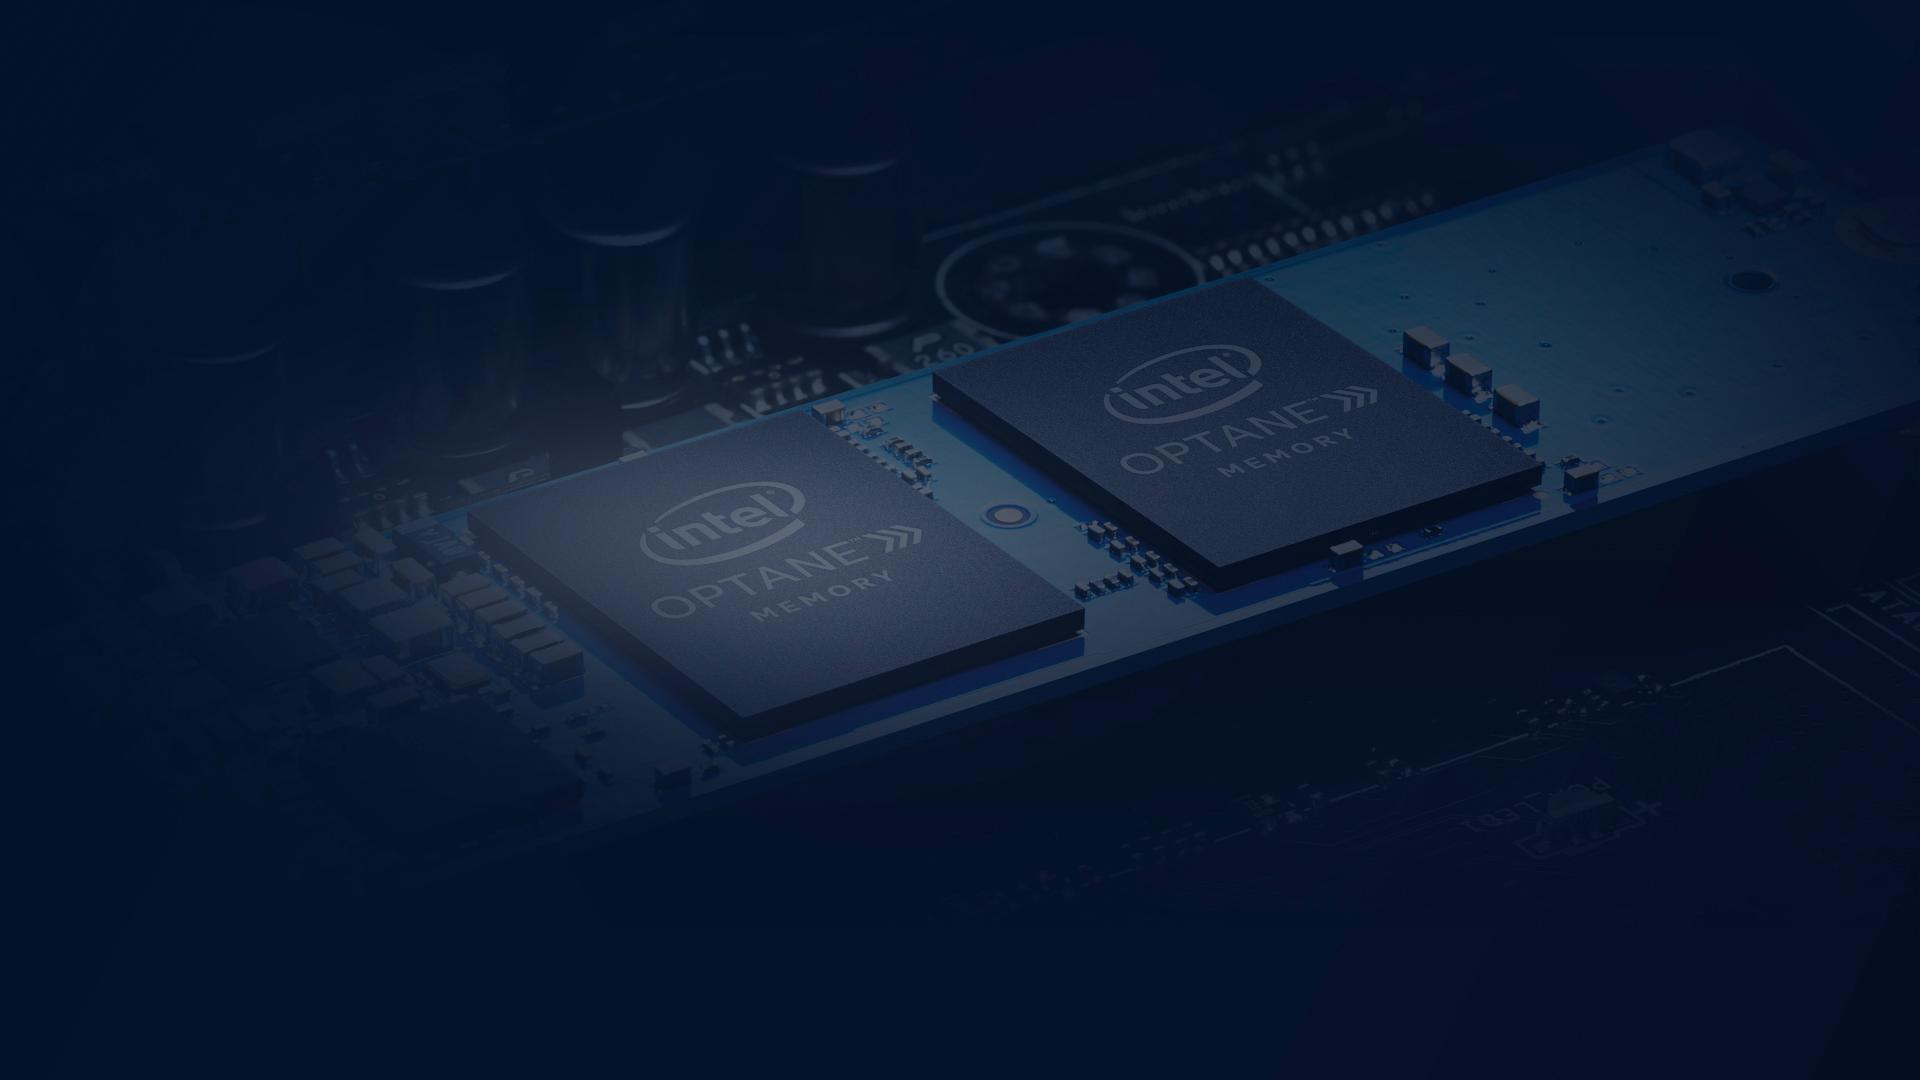 optane-memory-proof-point-bkgd-16x9.jpg.rendition.intel.web.1920.1080